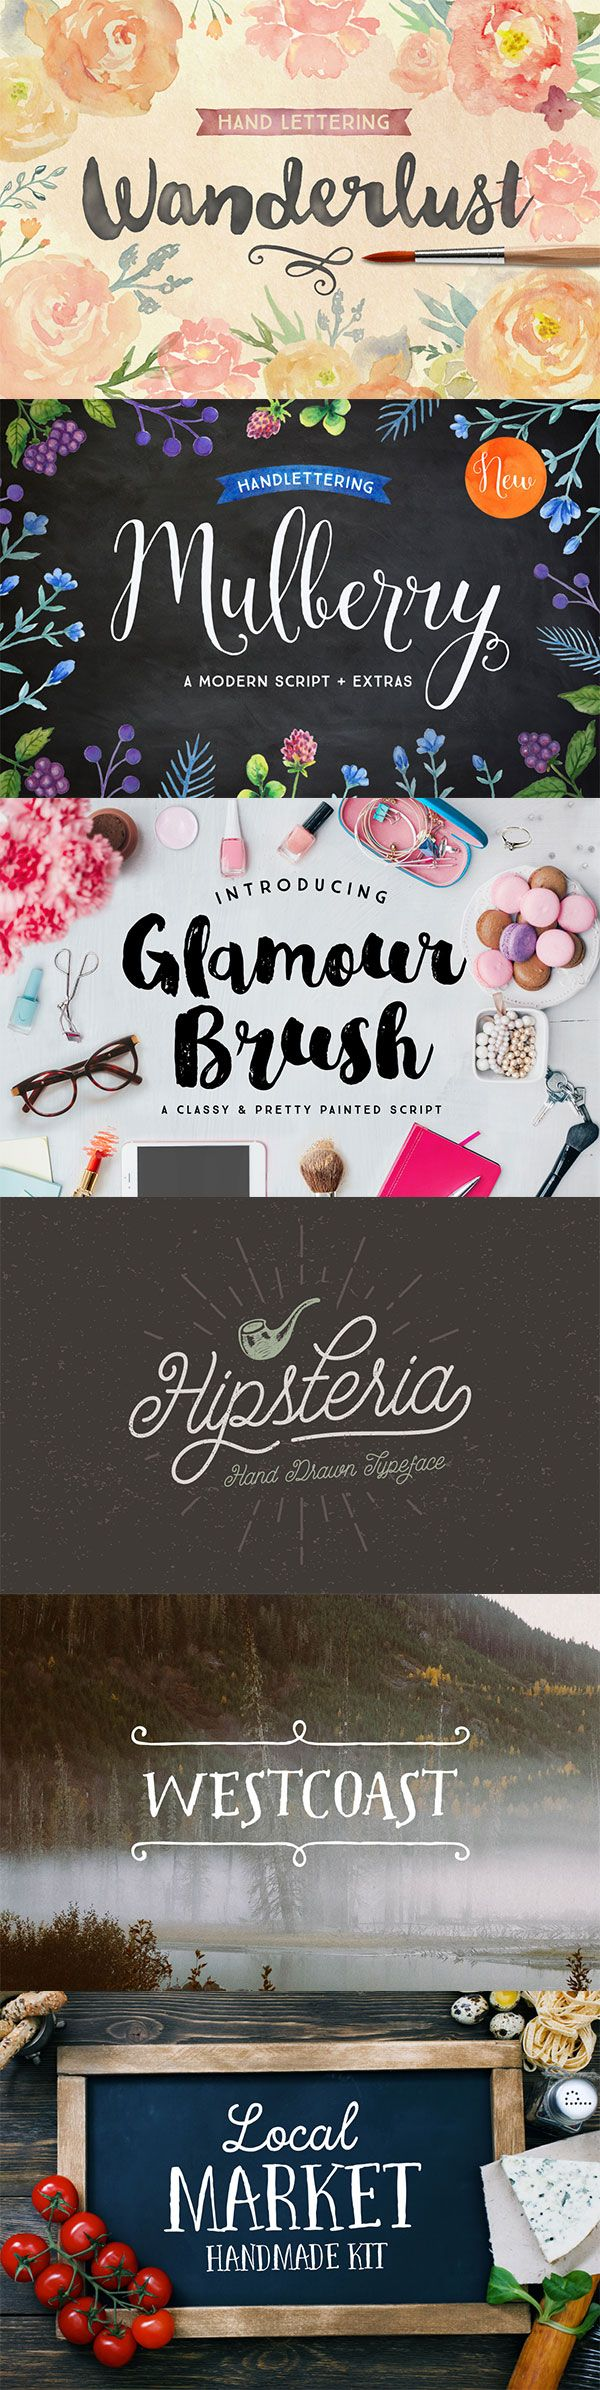 So many awesome hand-drawn fonts in our July Big Bundle! 106 great products like these for only $39! ✌